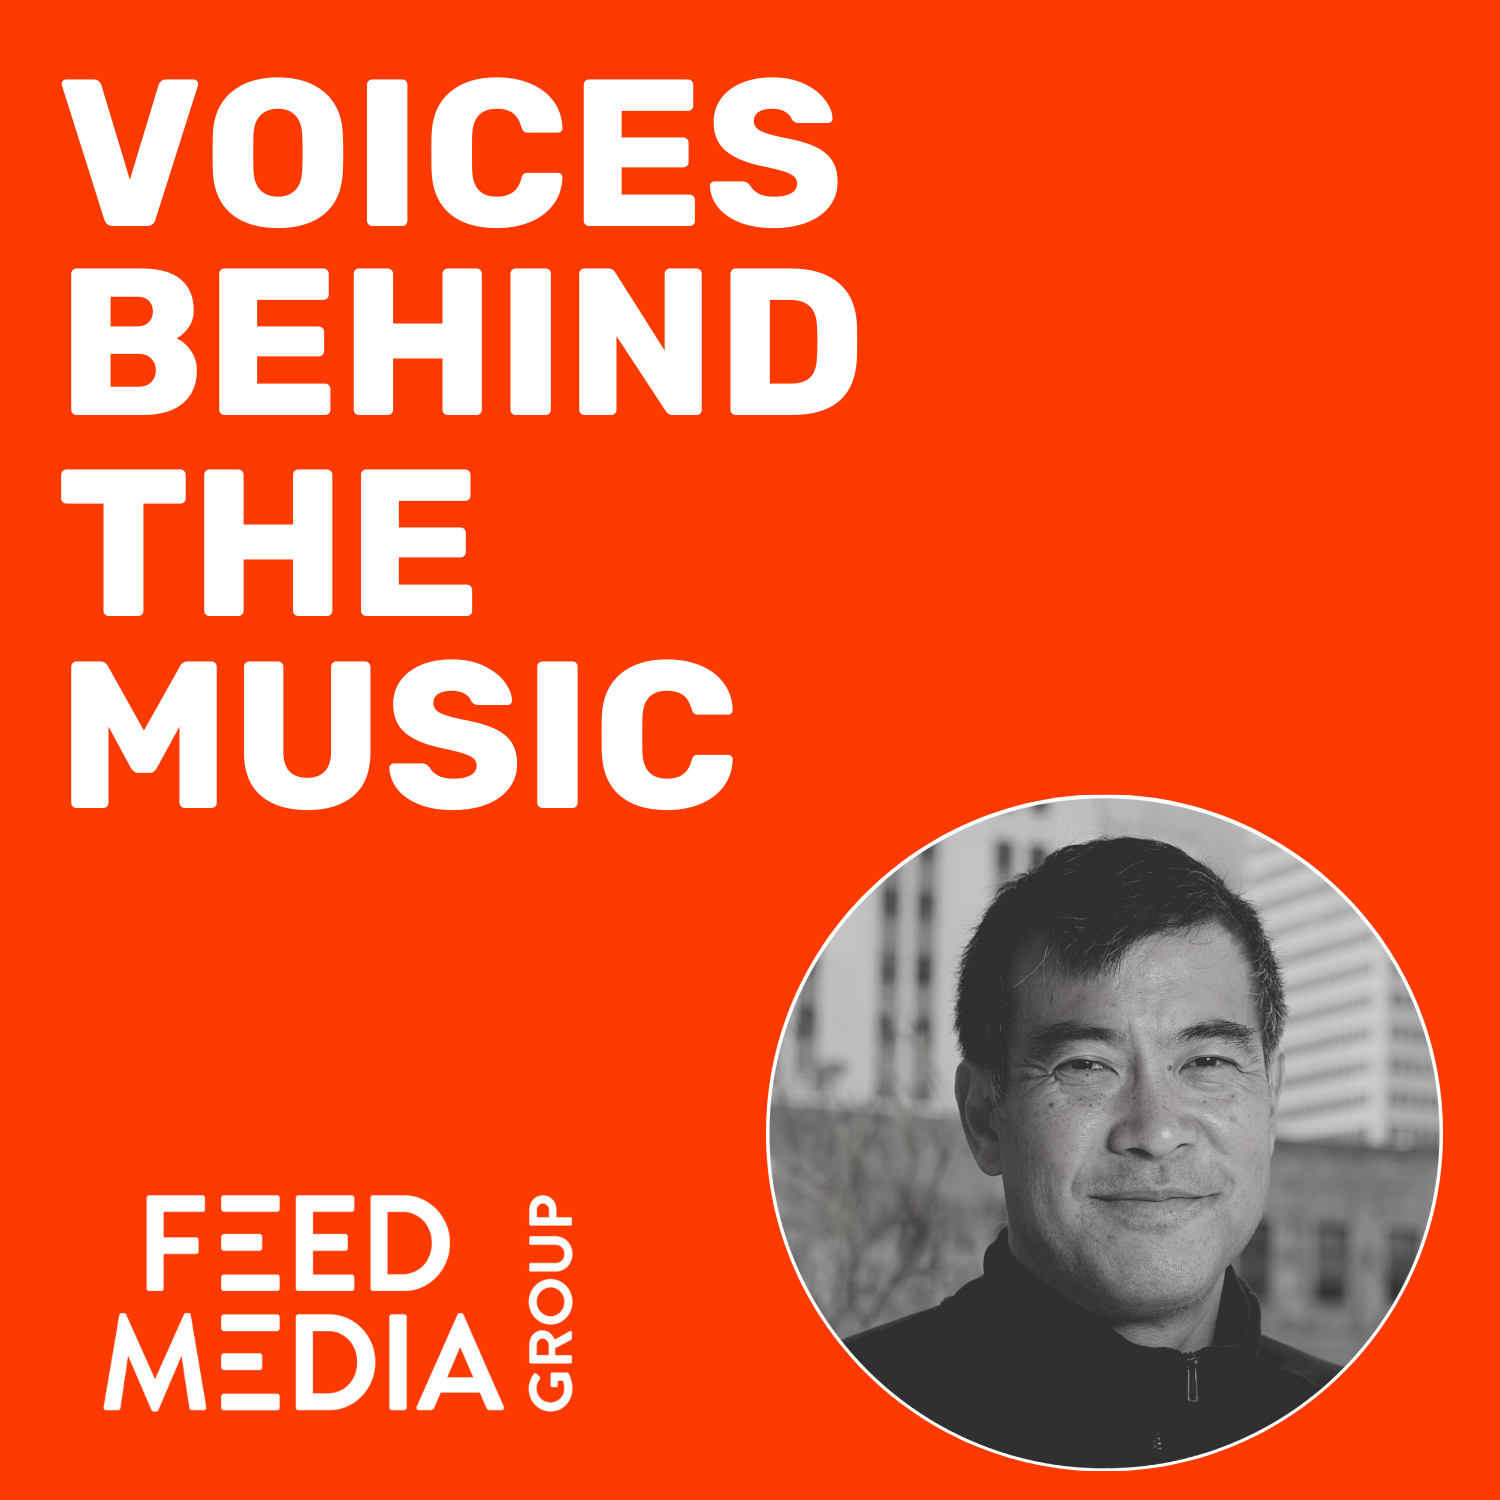 Artwork for podcast Voices Behind The Music